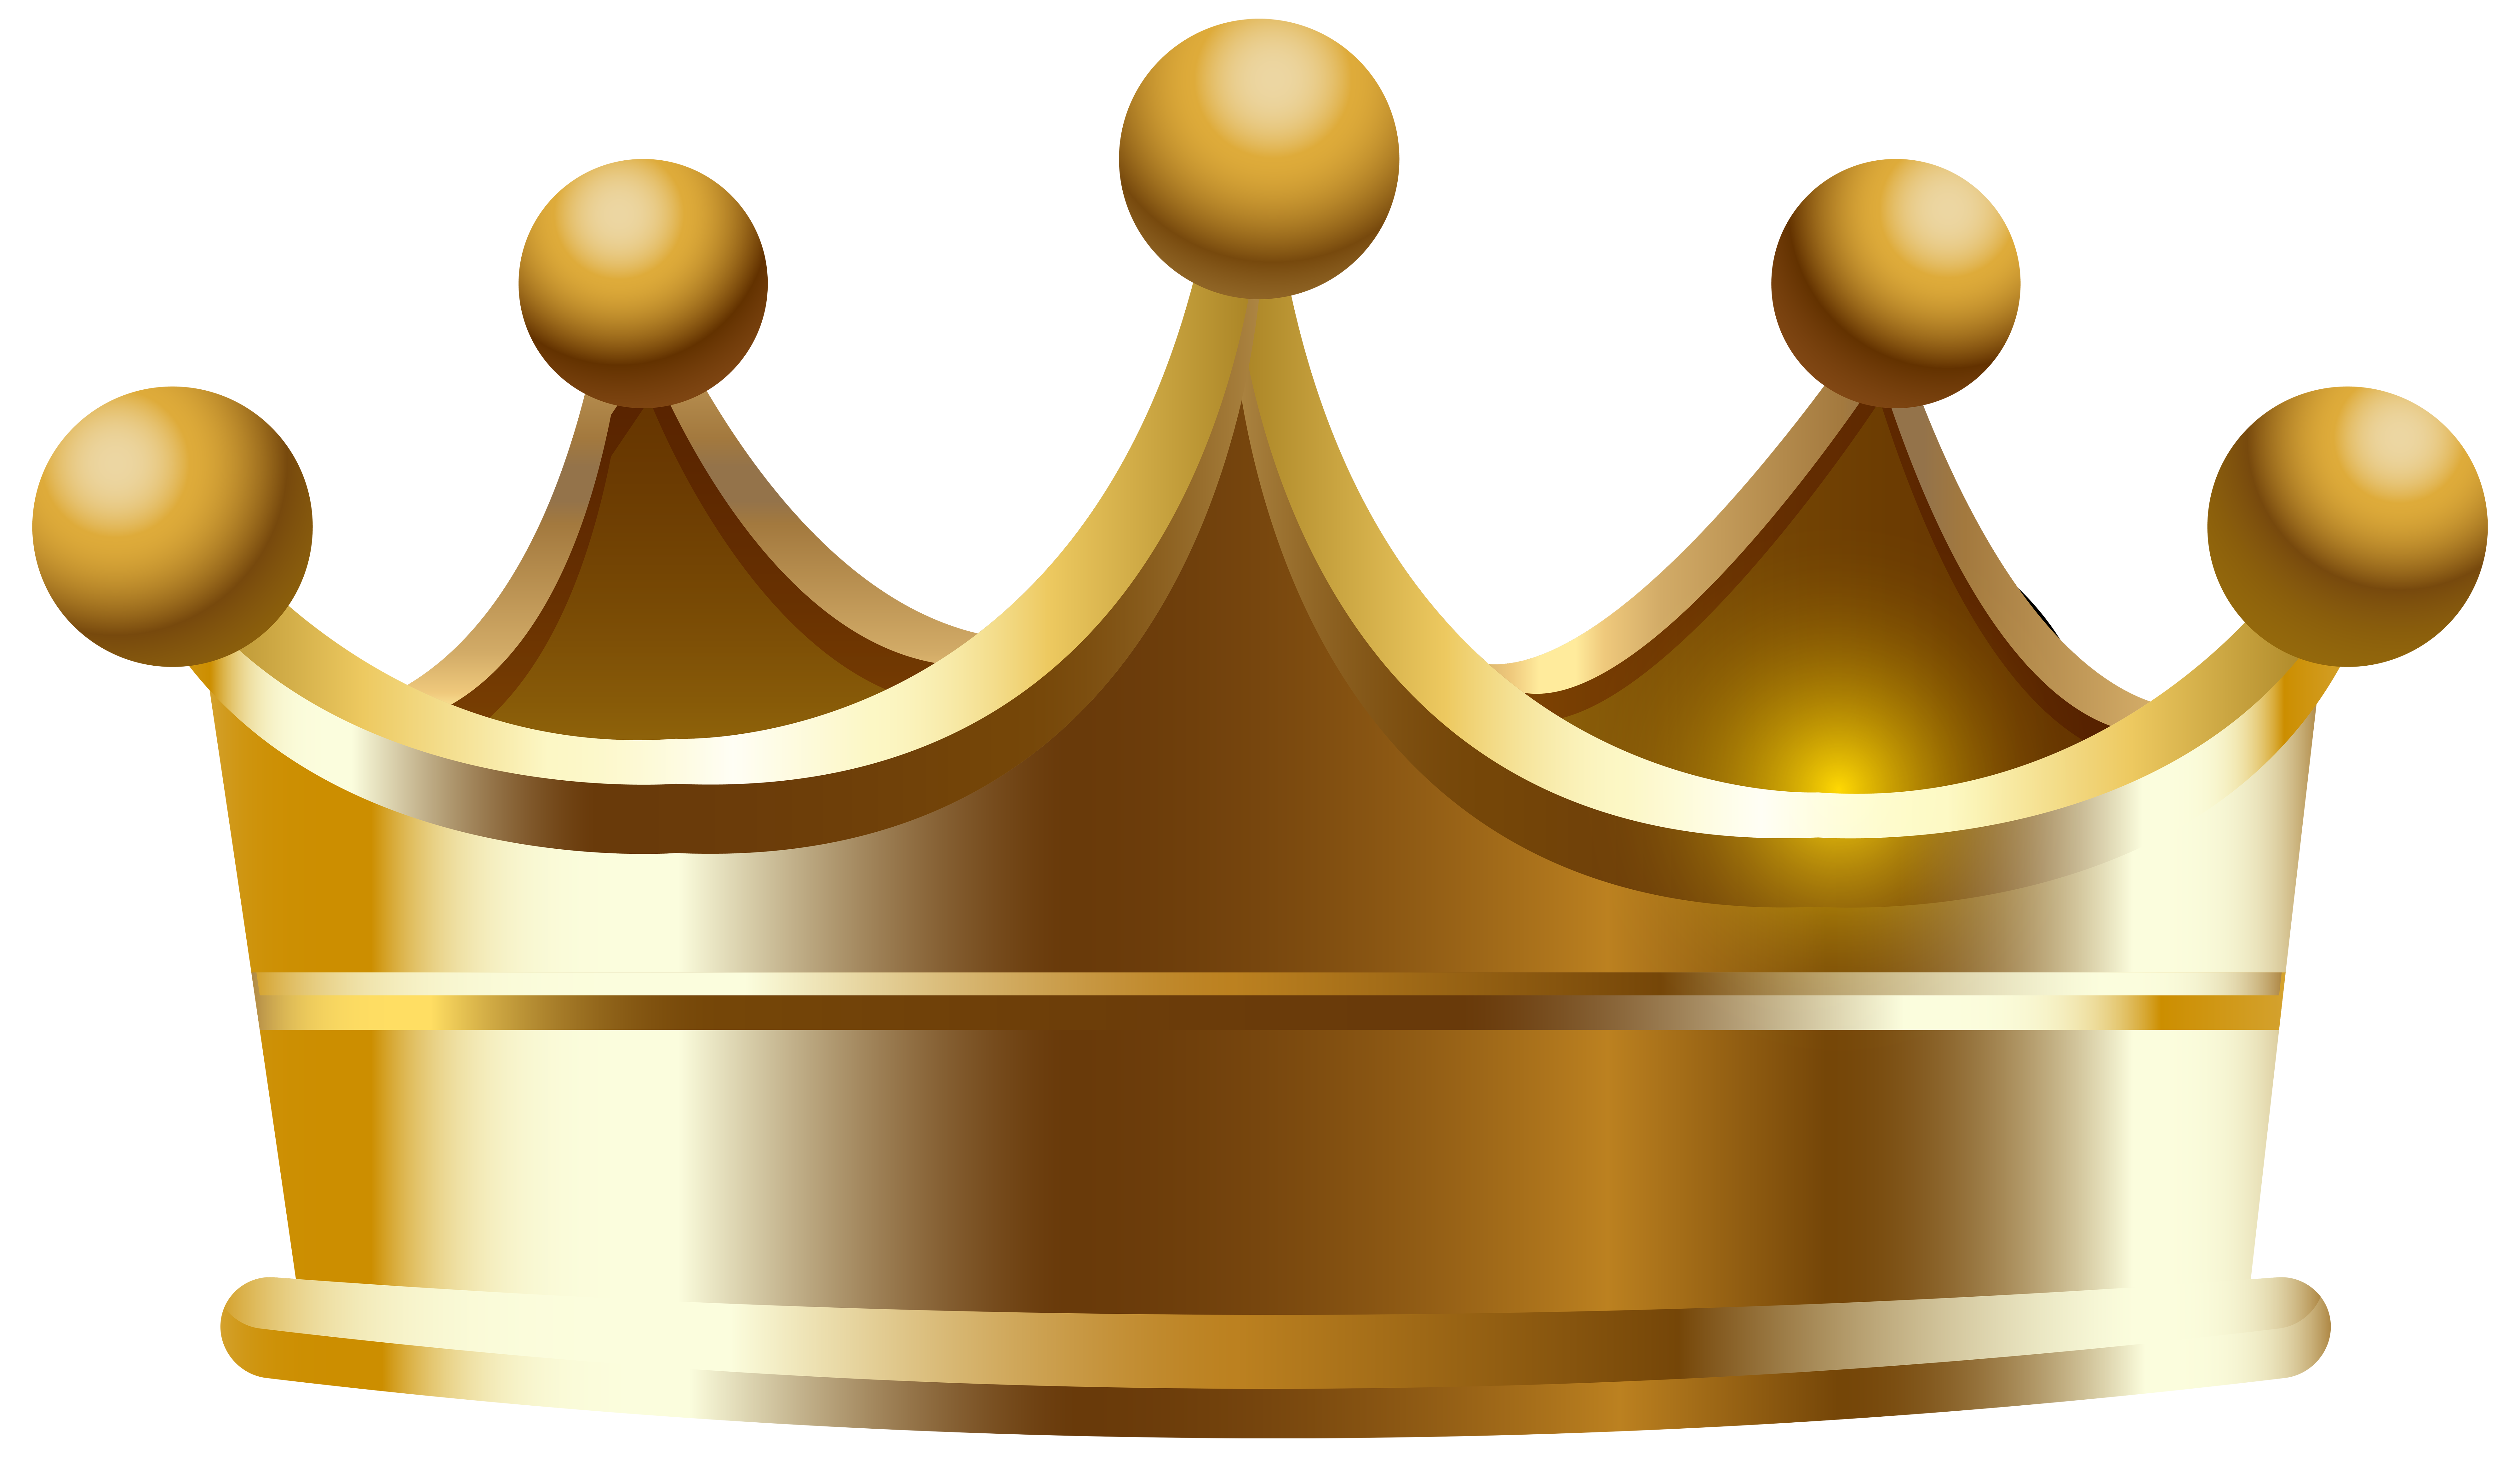 Free gold crown clipart images png transparent stock Crown Clip art - Crown PNG Transparent Clip Art Image 8000*4625 ... png transparent stock